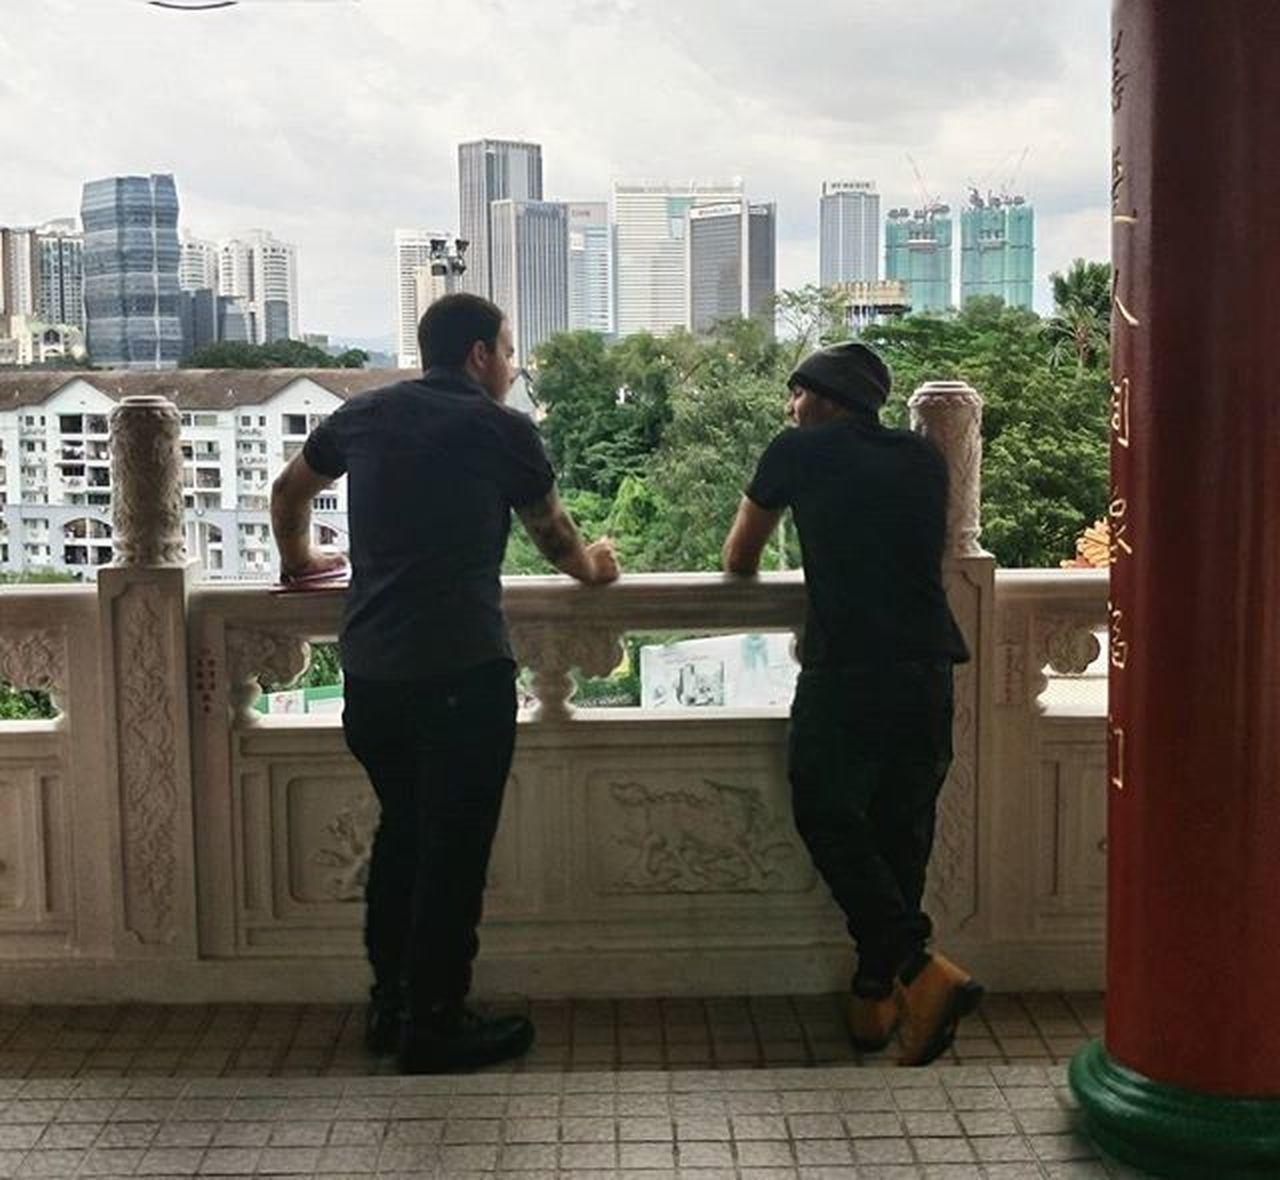 Bromance THESE Are My Friends in Thean Hou Temple (天后宫) Buddhist Temple Kuala Lumpur Malaysia Discover Your City Cityscapes Peoplephotography People Watching Portrait Of A Friend Urban Landscape Peaceful Mobilephotography Sony Bromance Feel The Journey Original Experiences